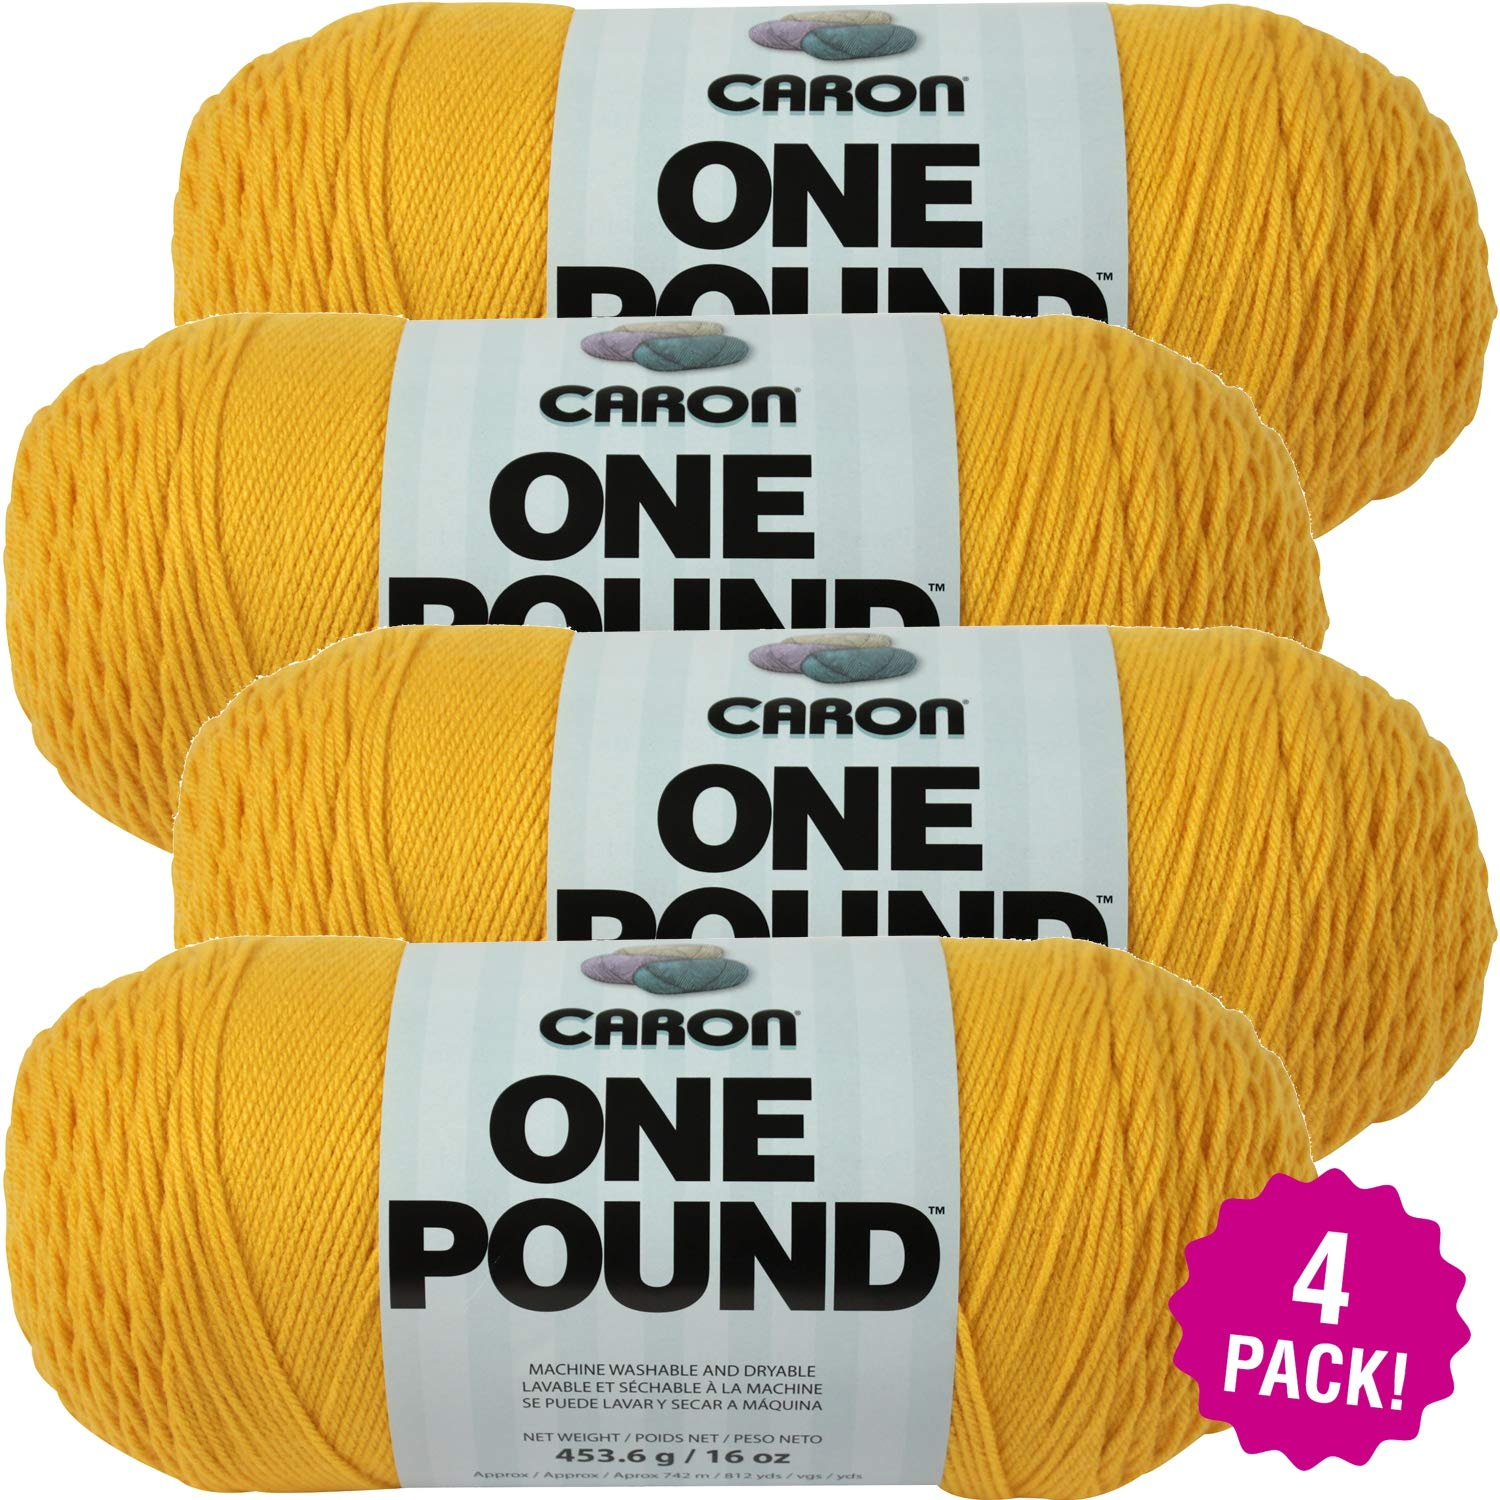 Caron 99609 One Pound Yarn-Sunflower, Multipack of 4, Pack